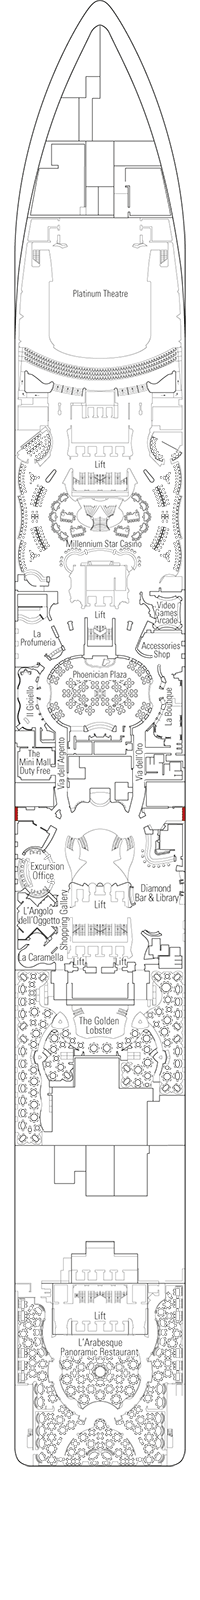 msc preziosa deck plan pdf